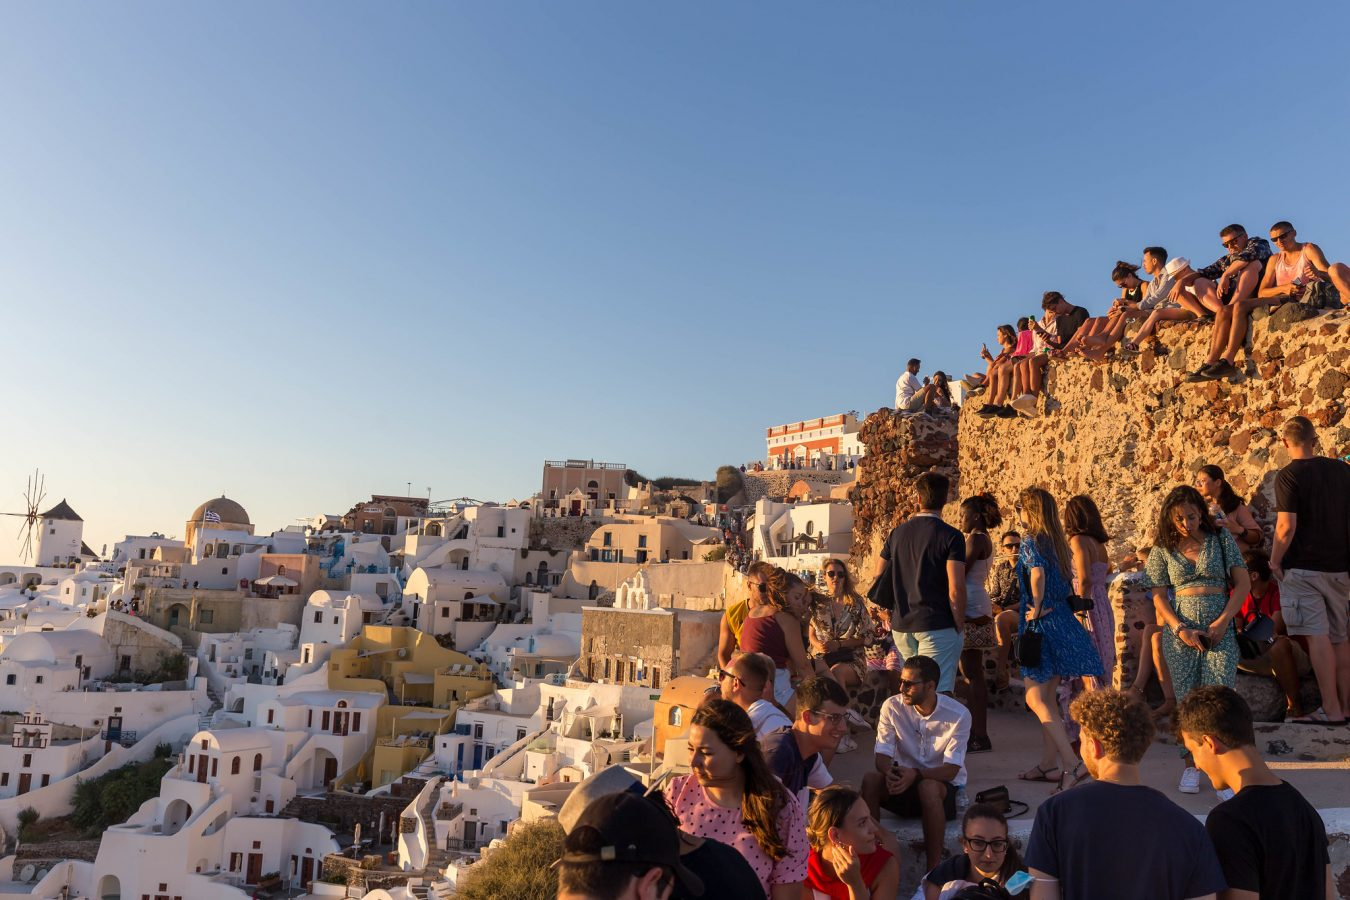 Santorini in July, no masks visible